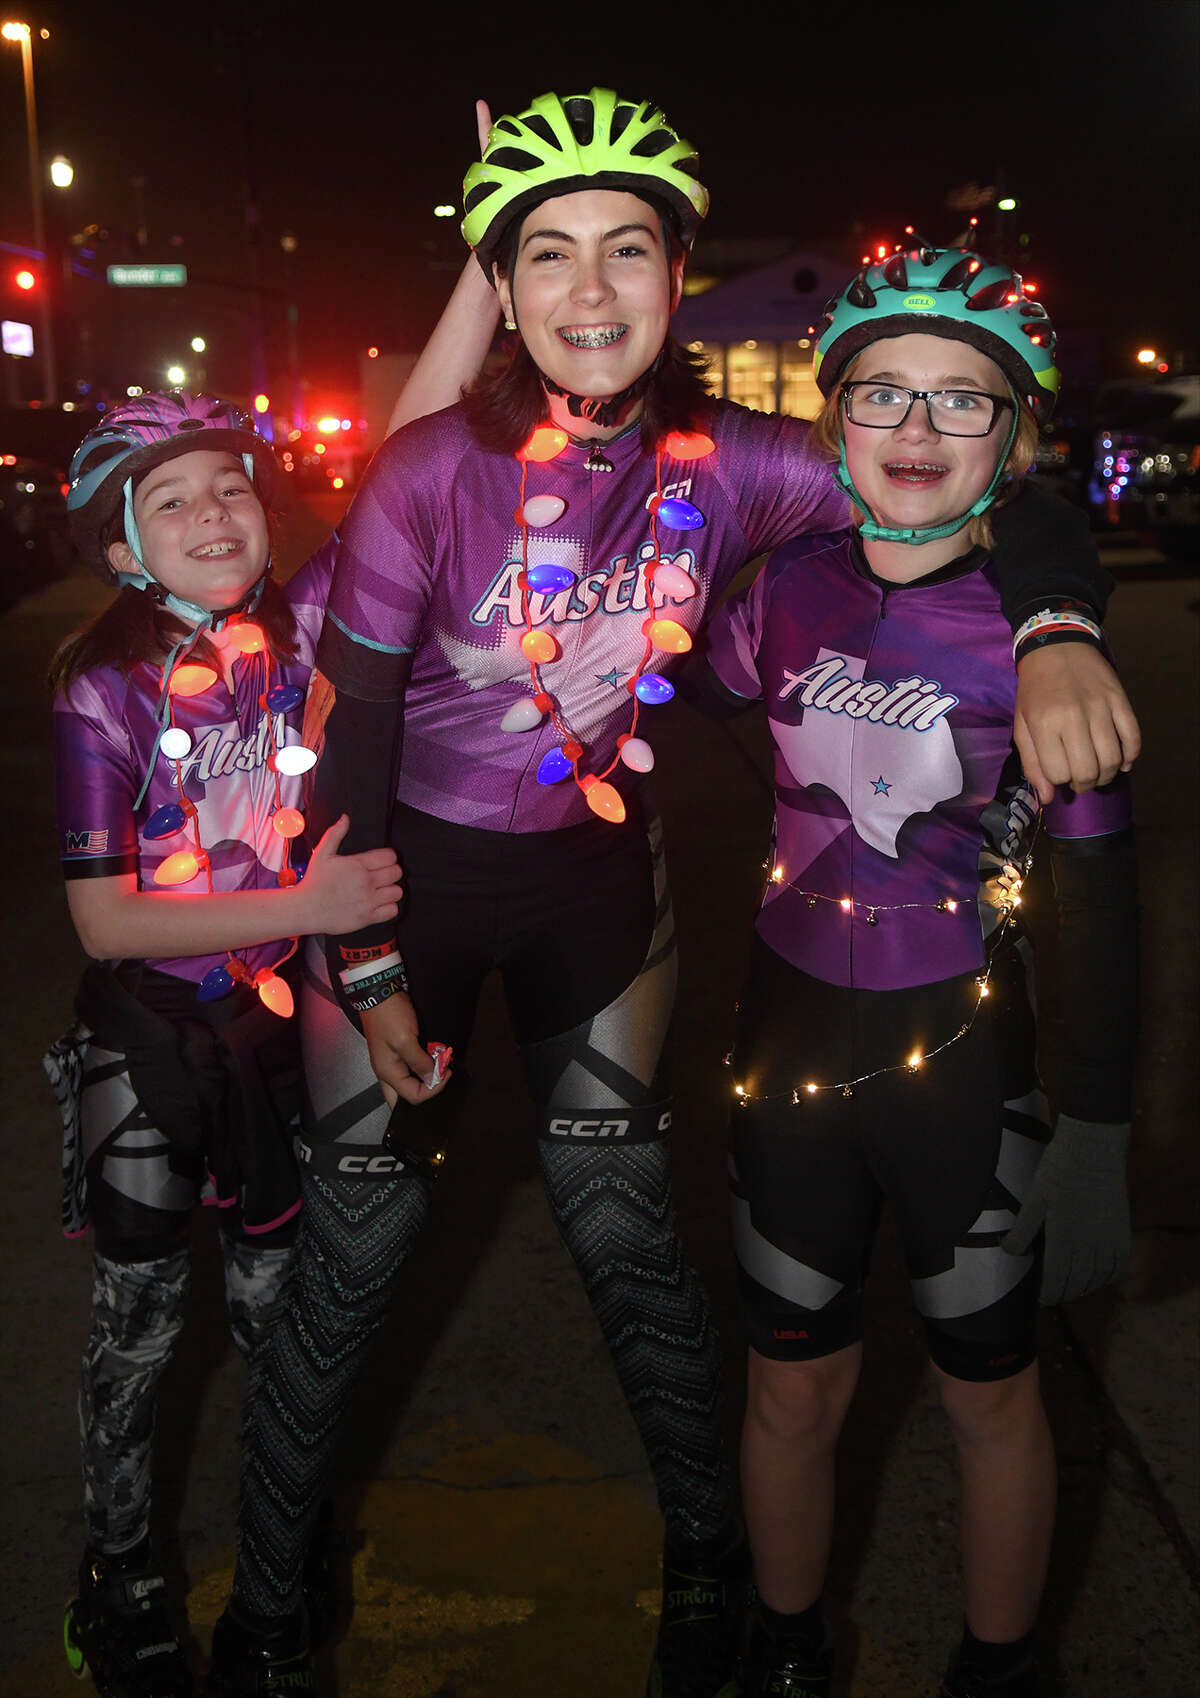 Hailey Sharp, 10, from left, a 4th grader at Greentree Elem., Joslin Ingraham, 14, an 8th grader at Creekwood Middle School, and Ayla Lydick, 11, a 6th grader at Creekwood Middle School, all members of the Texas Speed Club of inline skaters, wait for the start of the 26th Annual Christmas Parade of Lights on historic Main Street in Humble on Dec. 5, 2017. This year's parade theme was